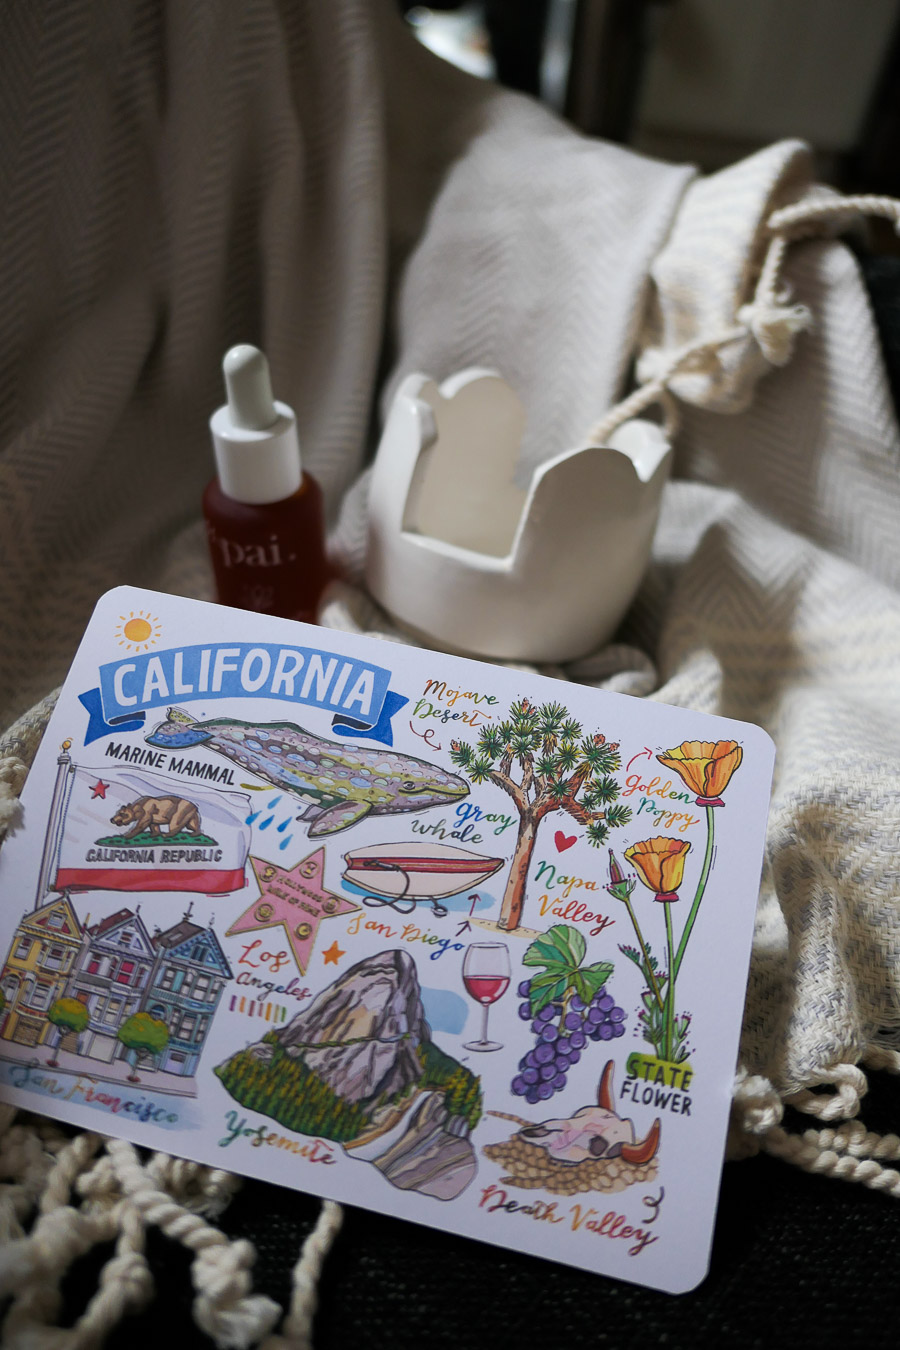 How to Help Small Businesses - Photo of Drawn postcard with California Iconic Images